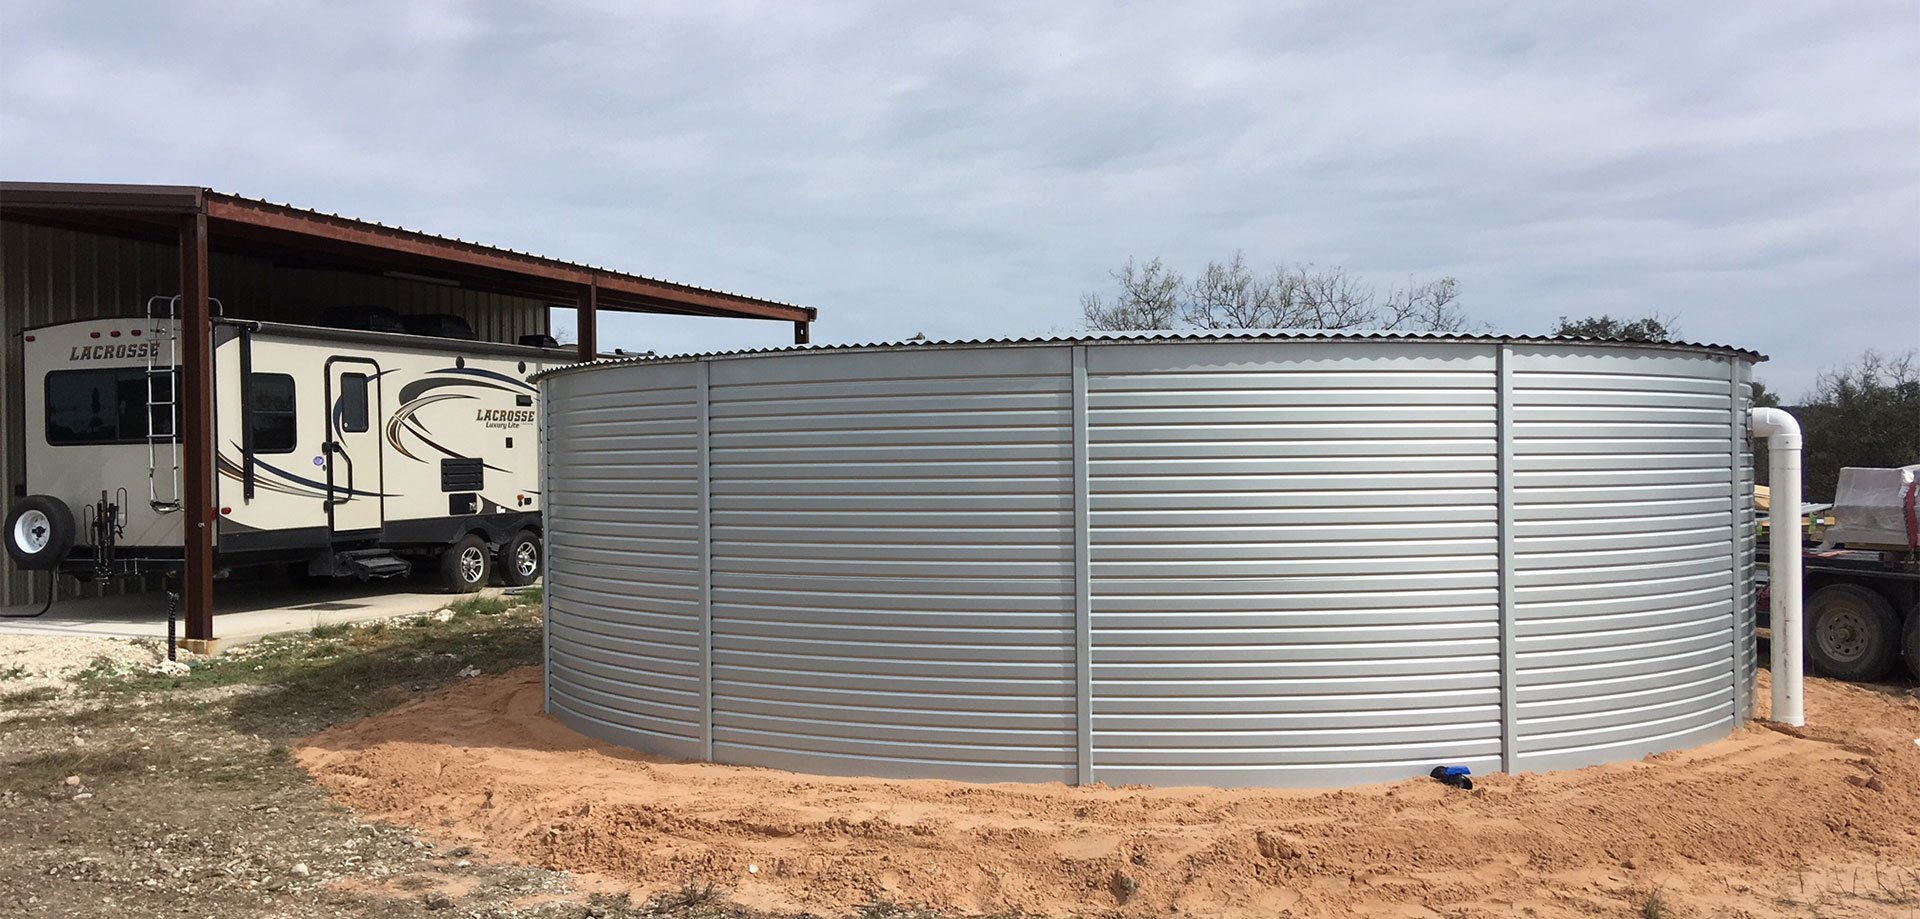 Tanks Alot selling Pioneer Water Tanks for Texas water storage